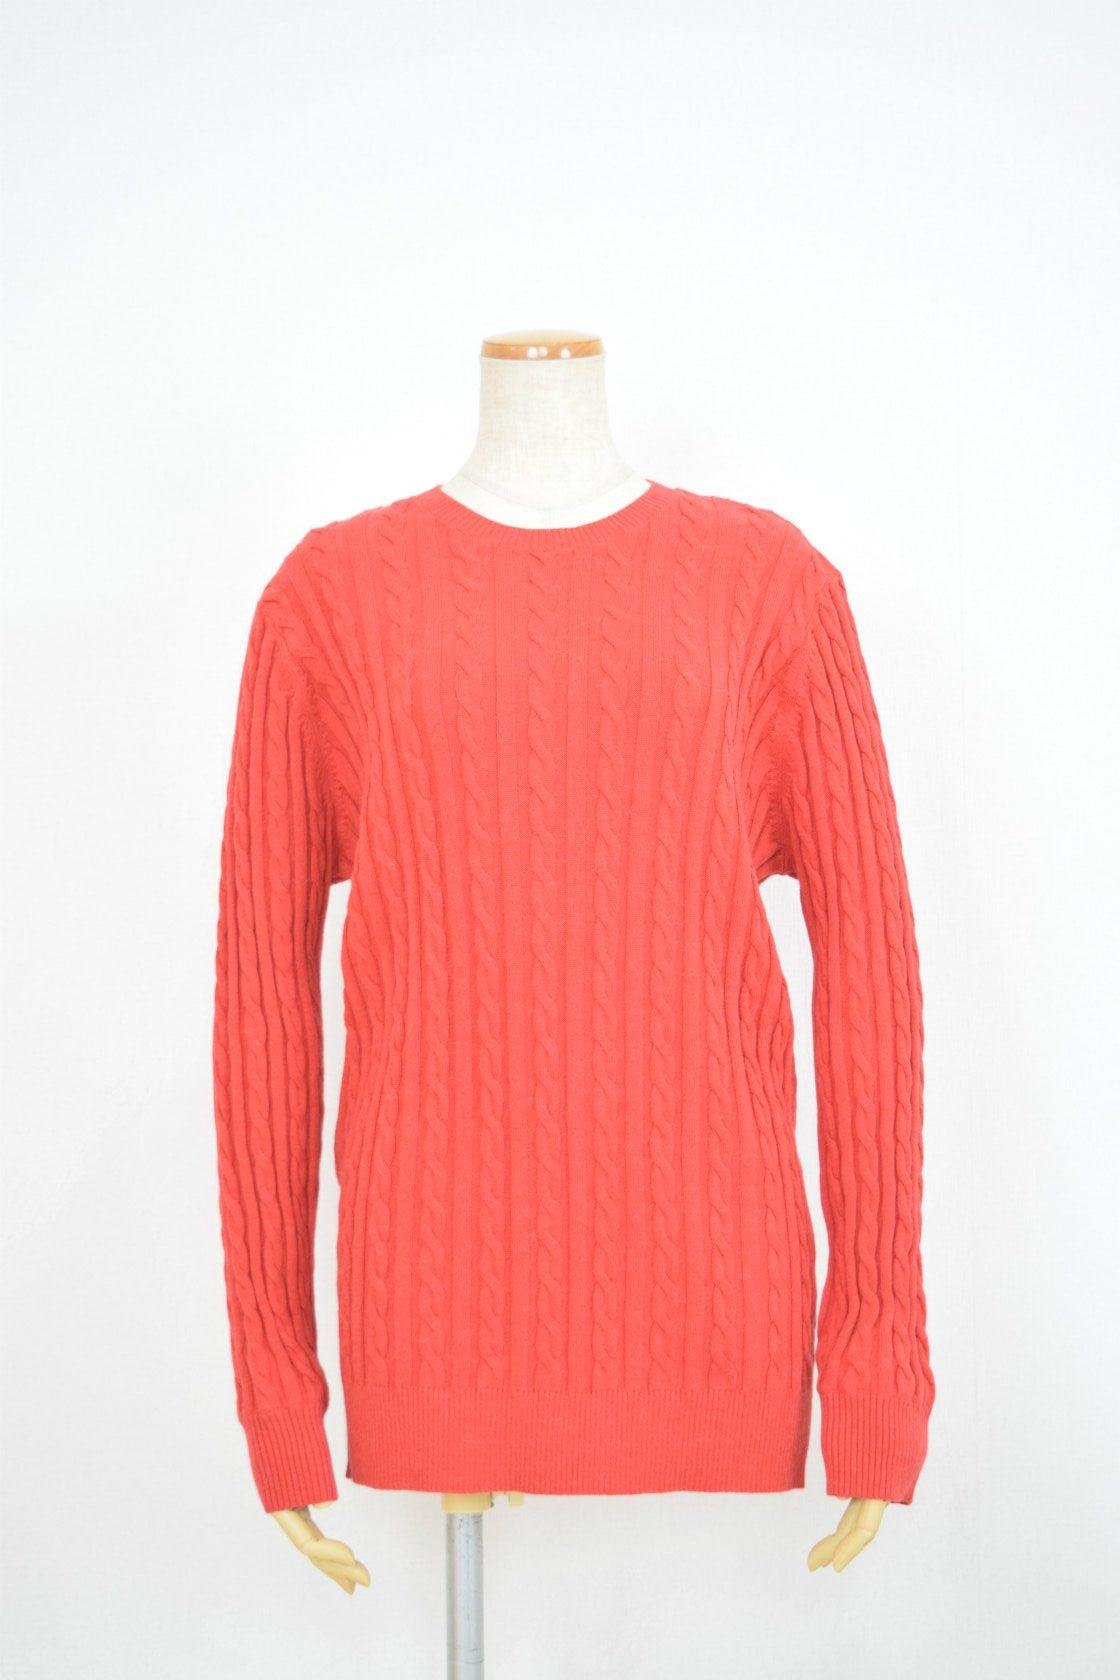 653907_RED